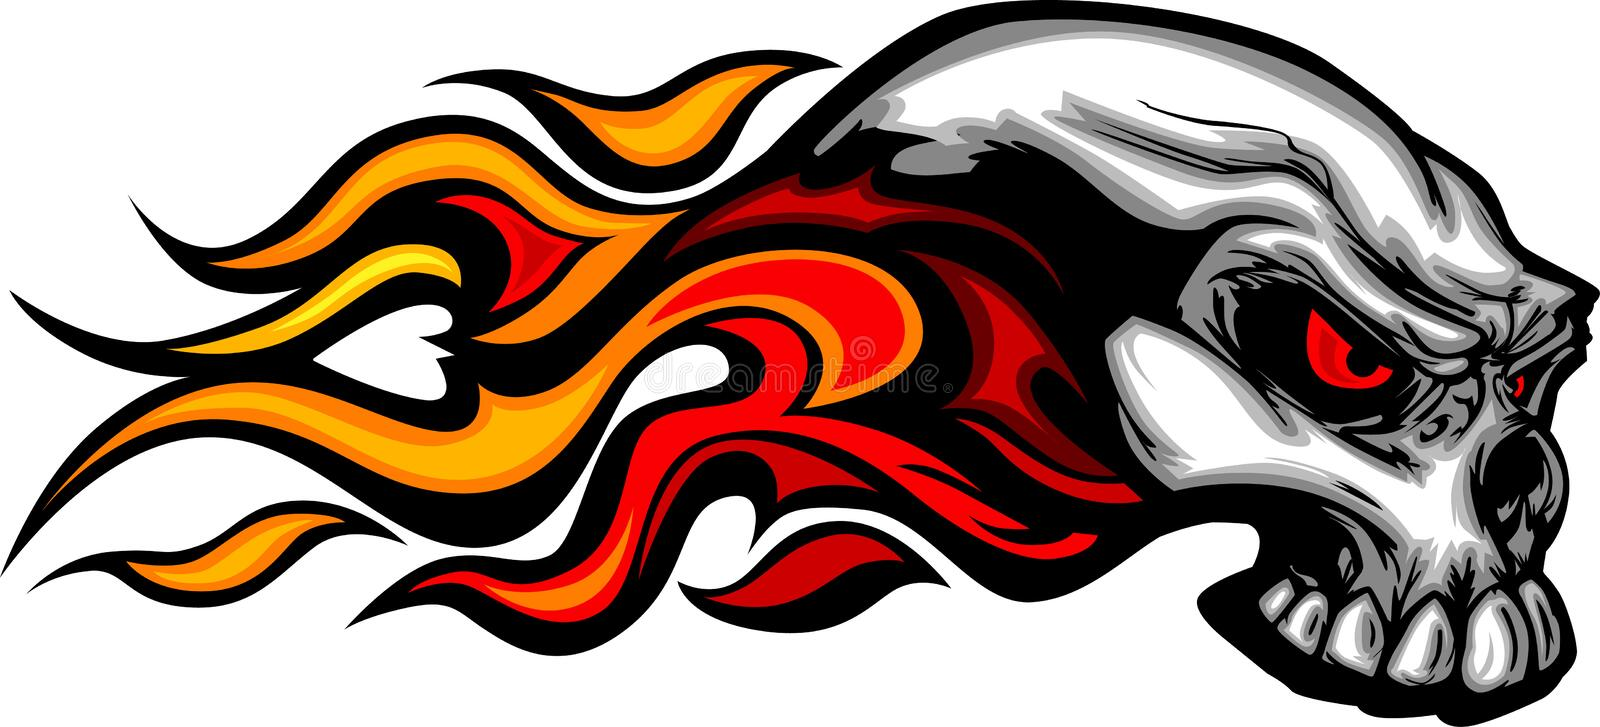 Flaming Skull Graphic Image vector illustration